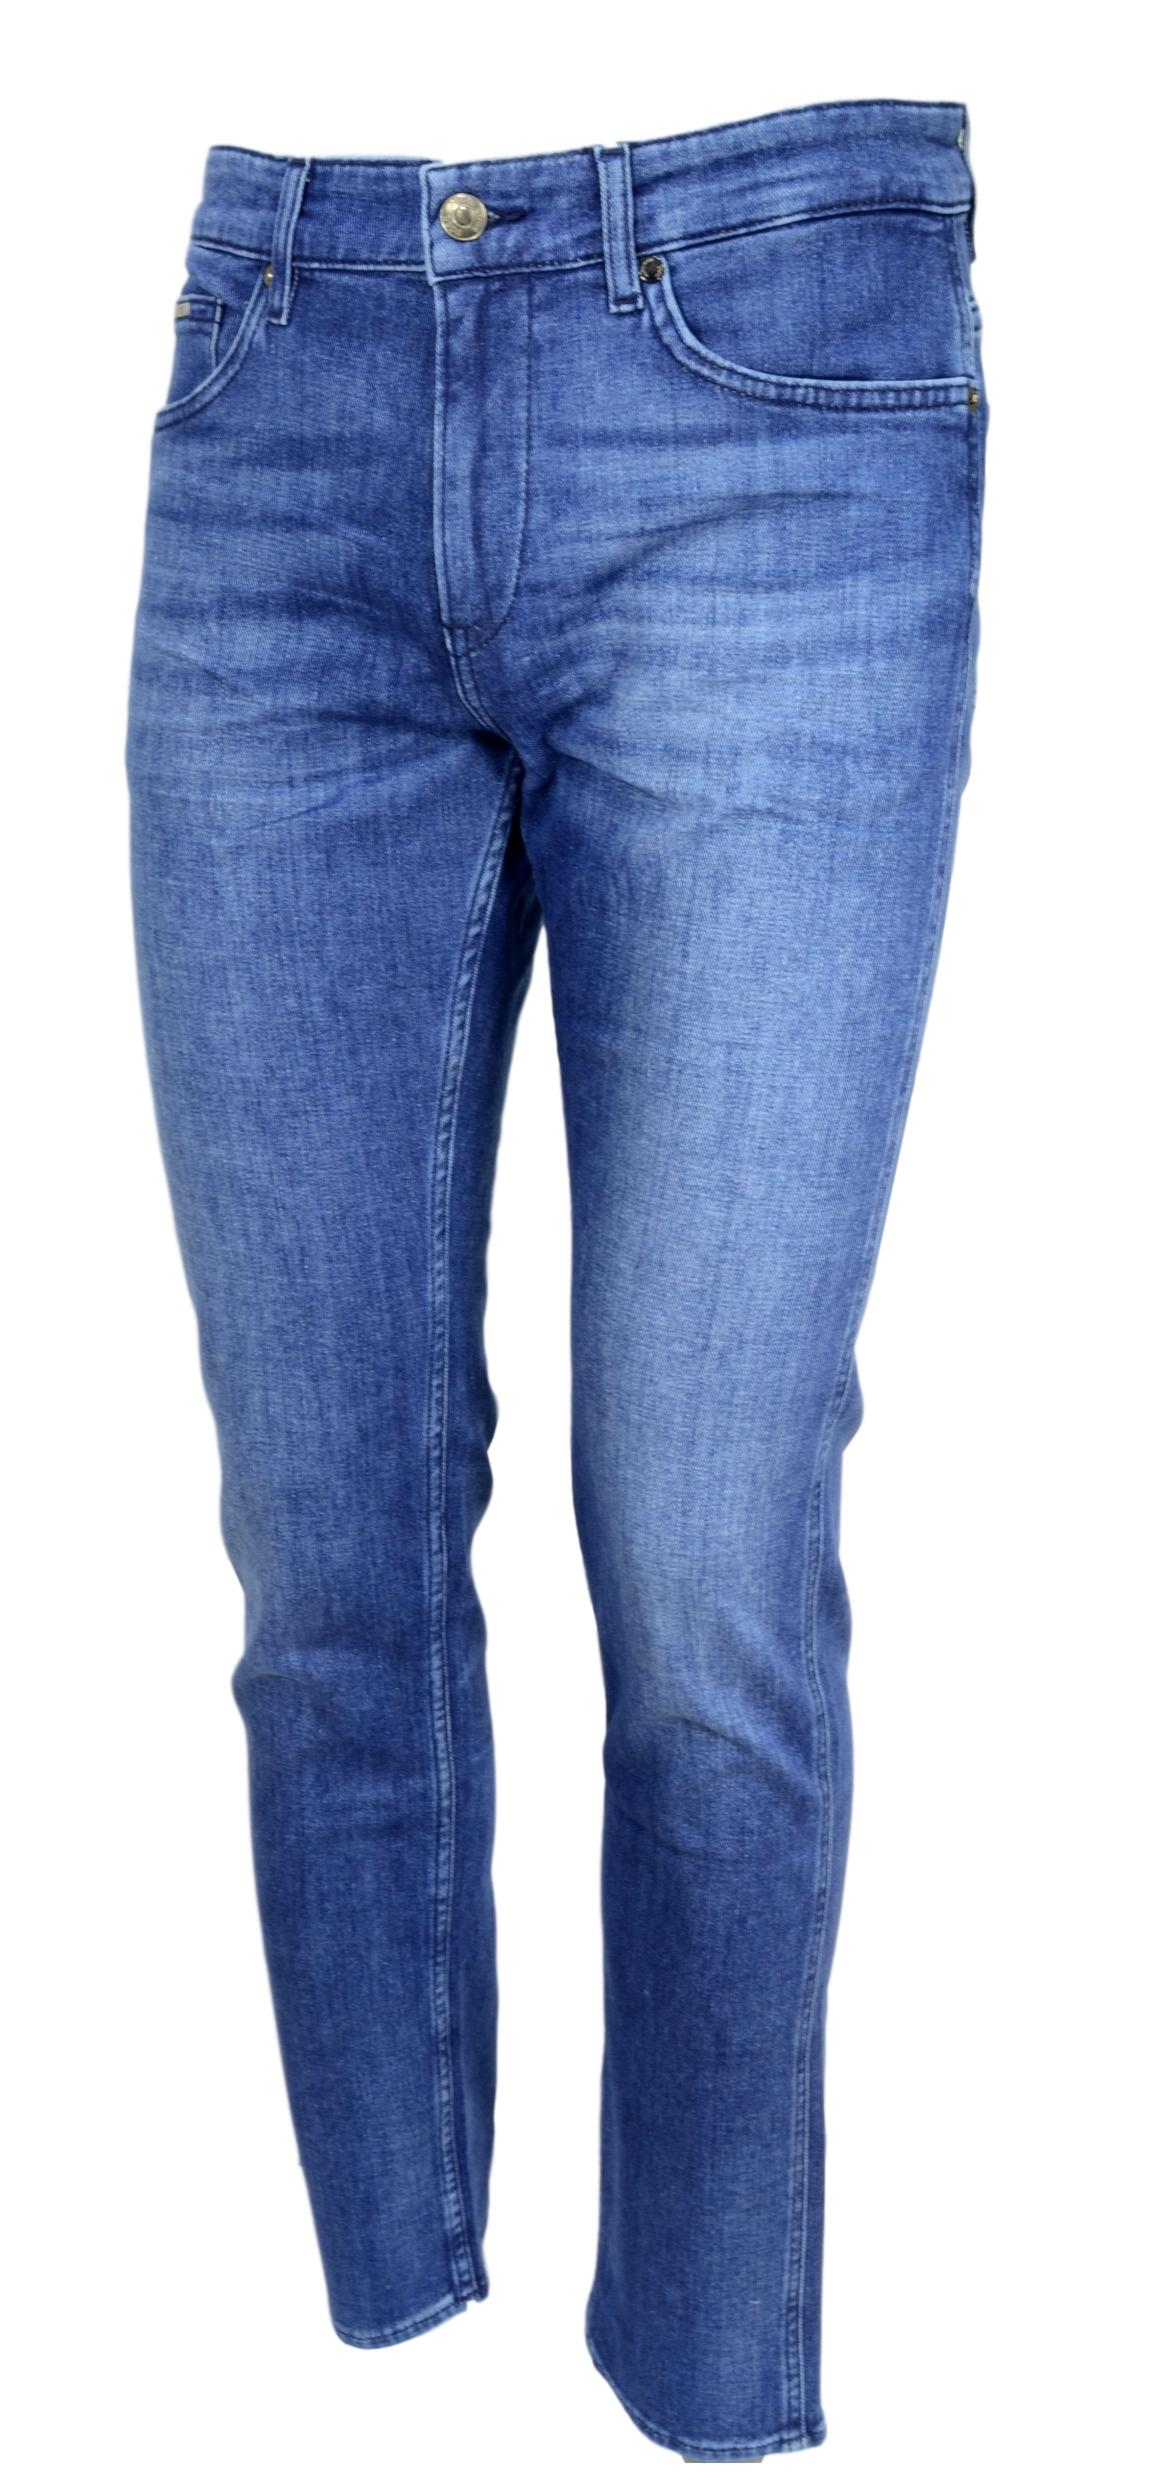 HUGO BOSS Jeans slim fit in denim italiano blu scuro Modello Delaware3 50438747